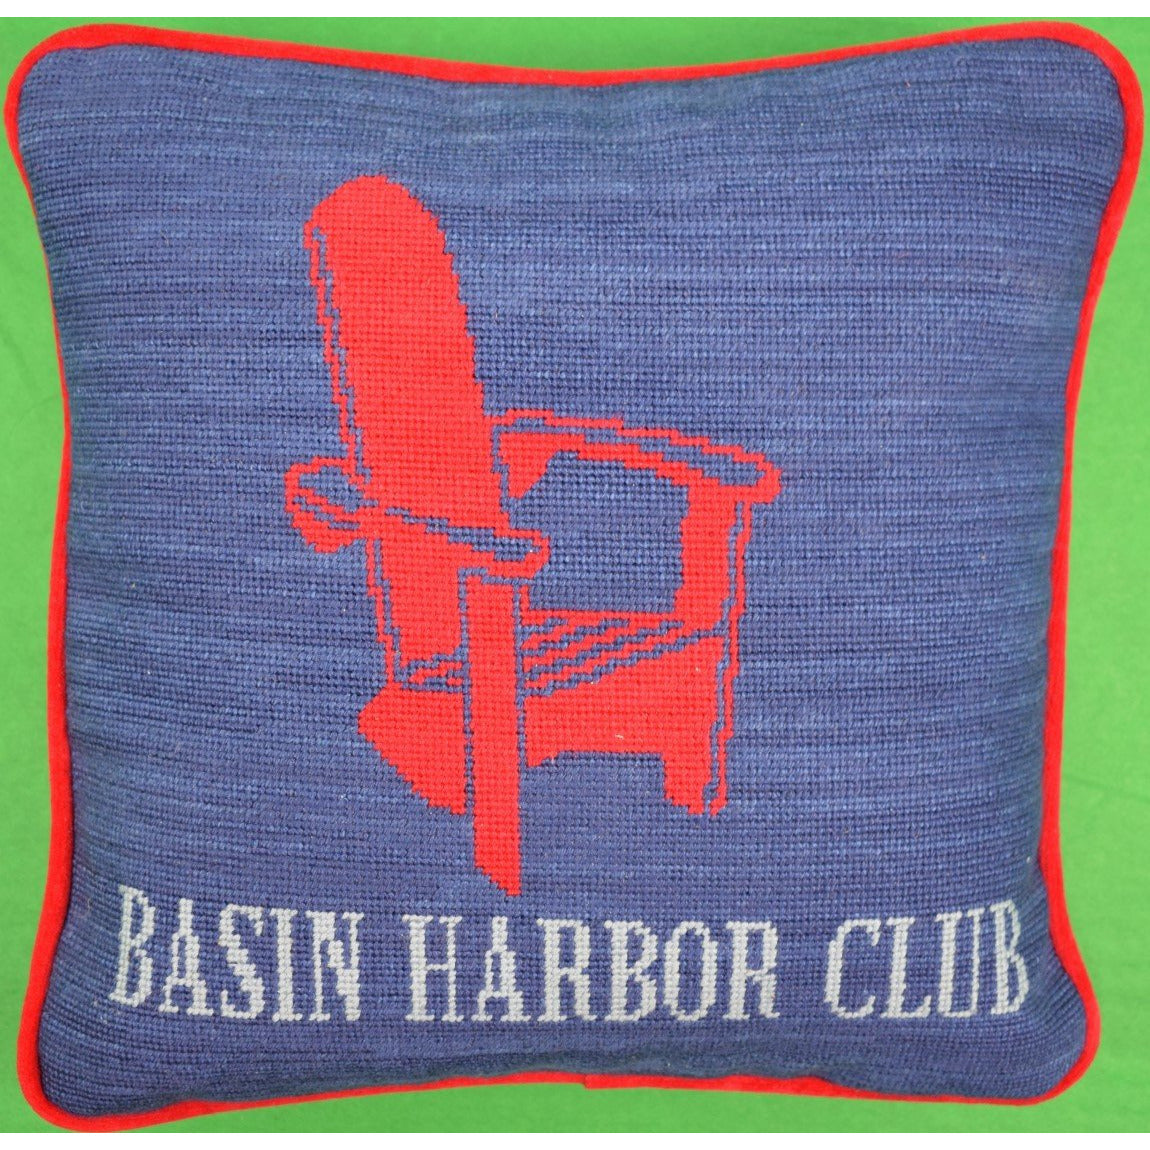 Basin Harbor Club Adirondack Chair Needlepoint Pillow